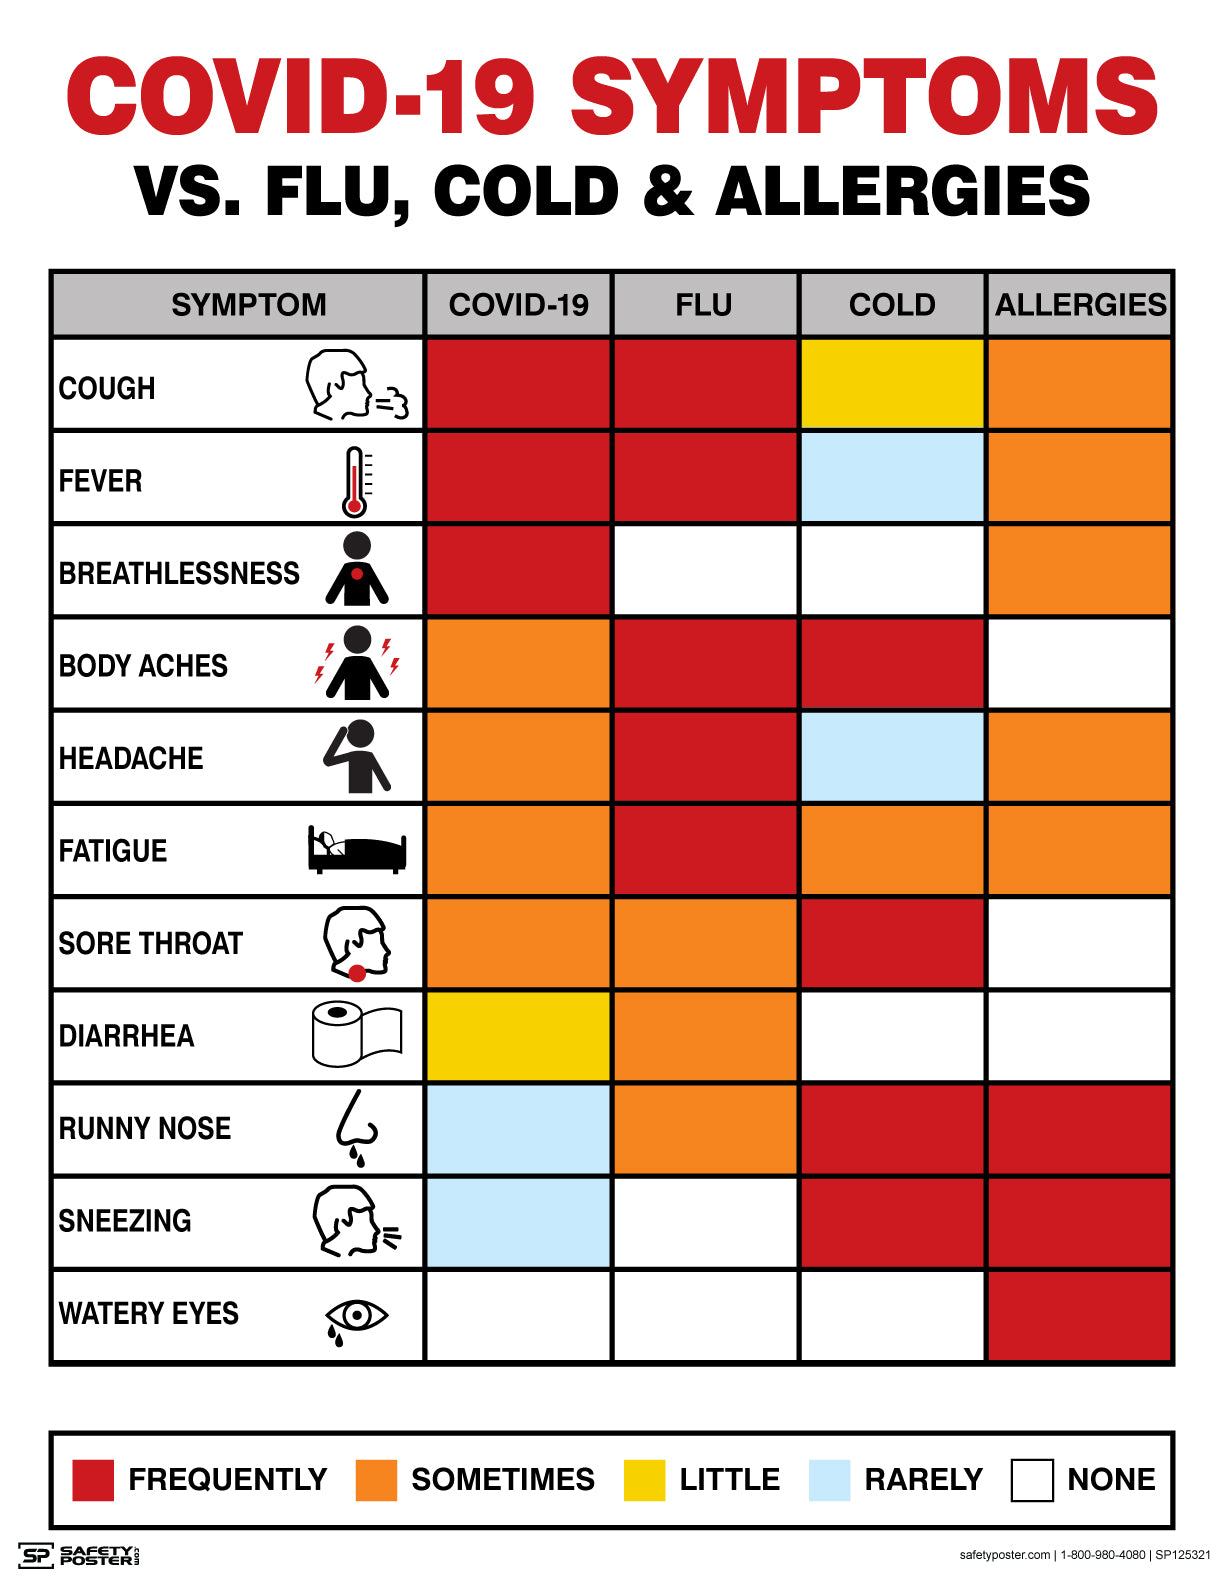 COVID-19 Symptoms Vs. Flu, Cold and Allergies - Safety Poster